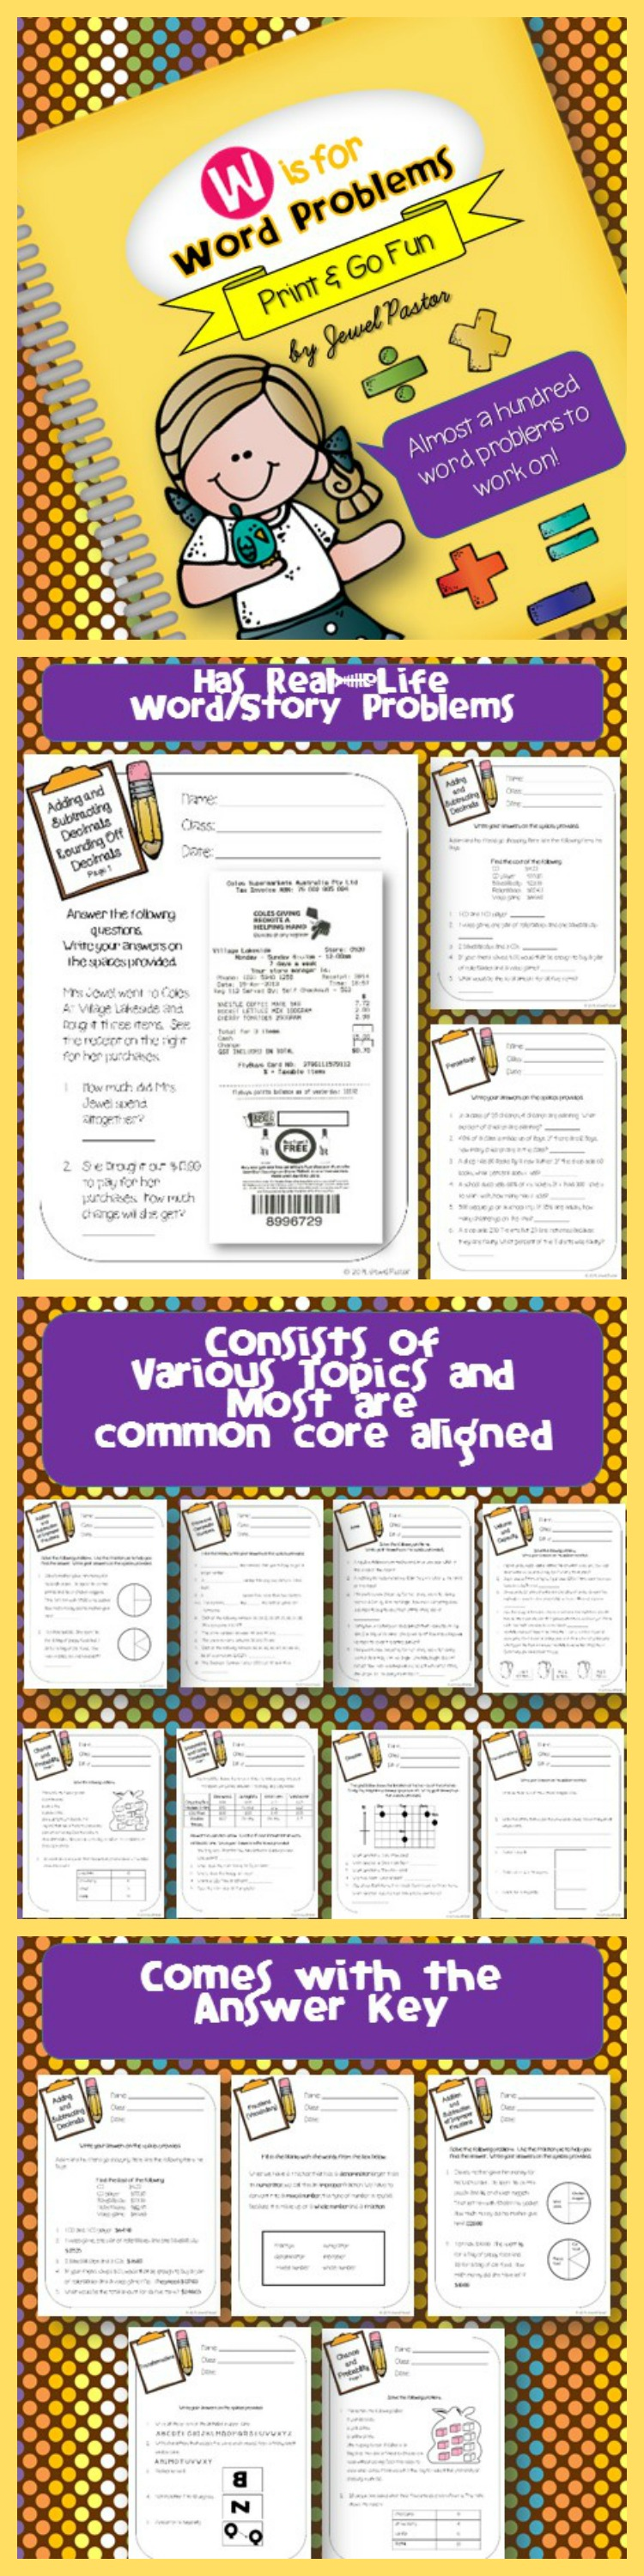 Word Problems Activities Math Problem Solving Strategies Posters